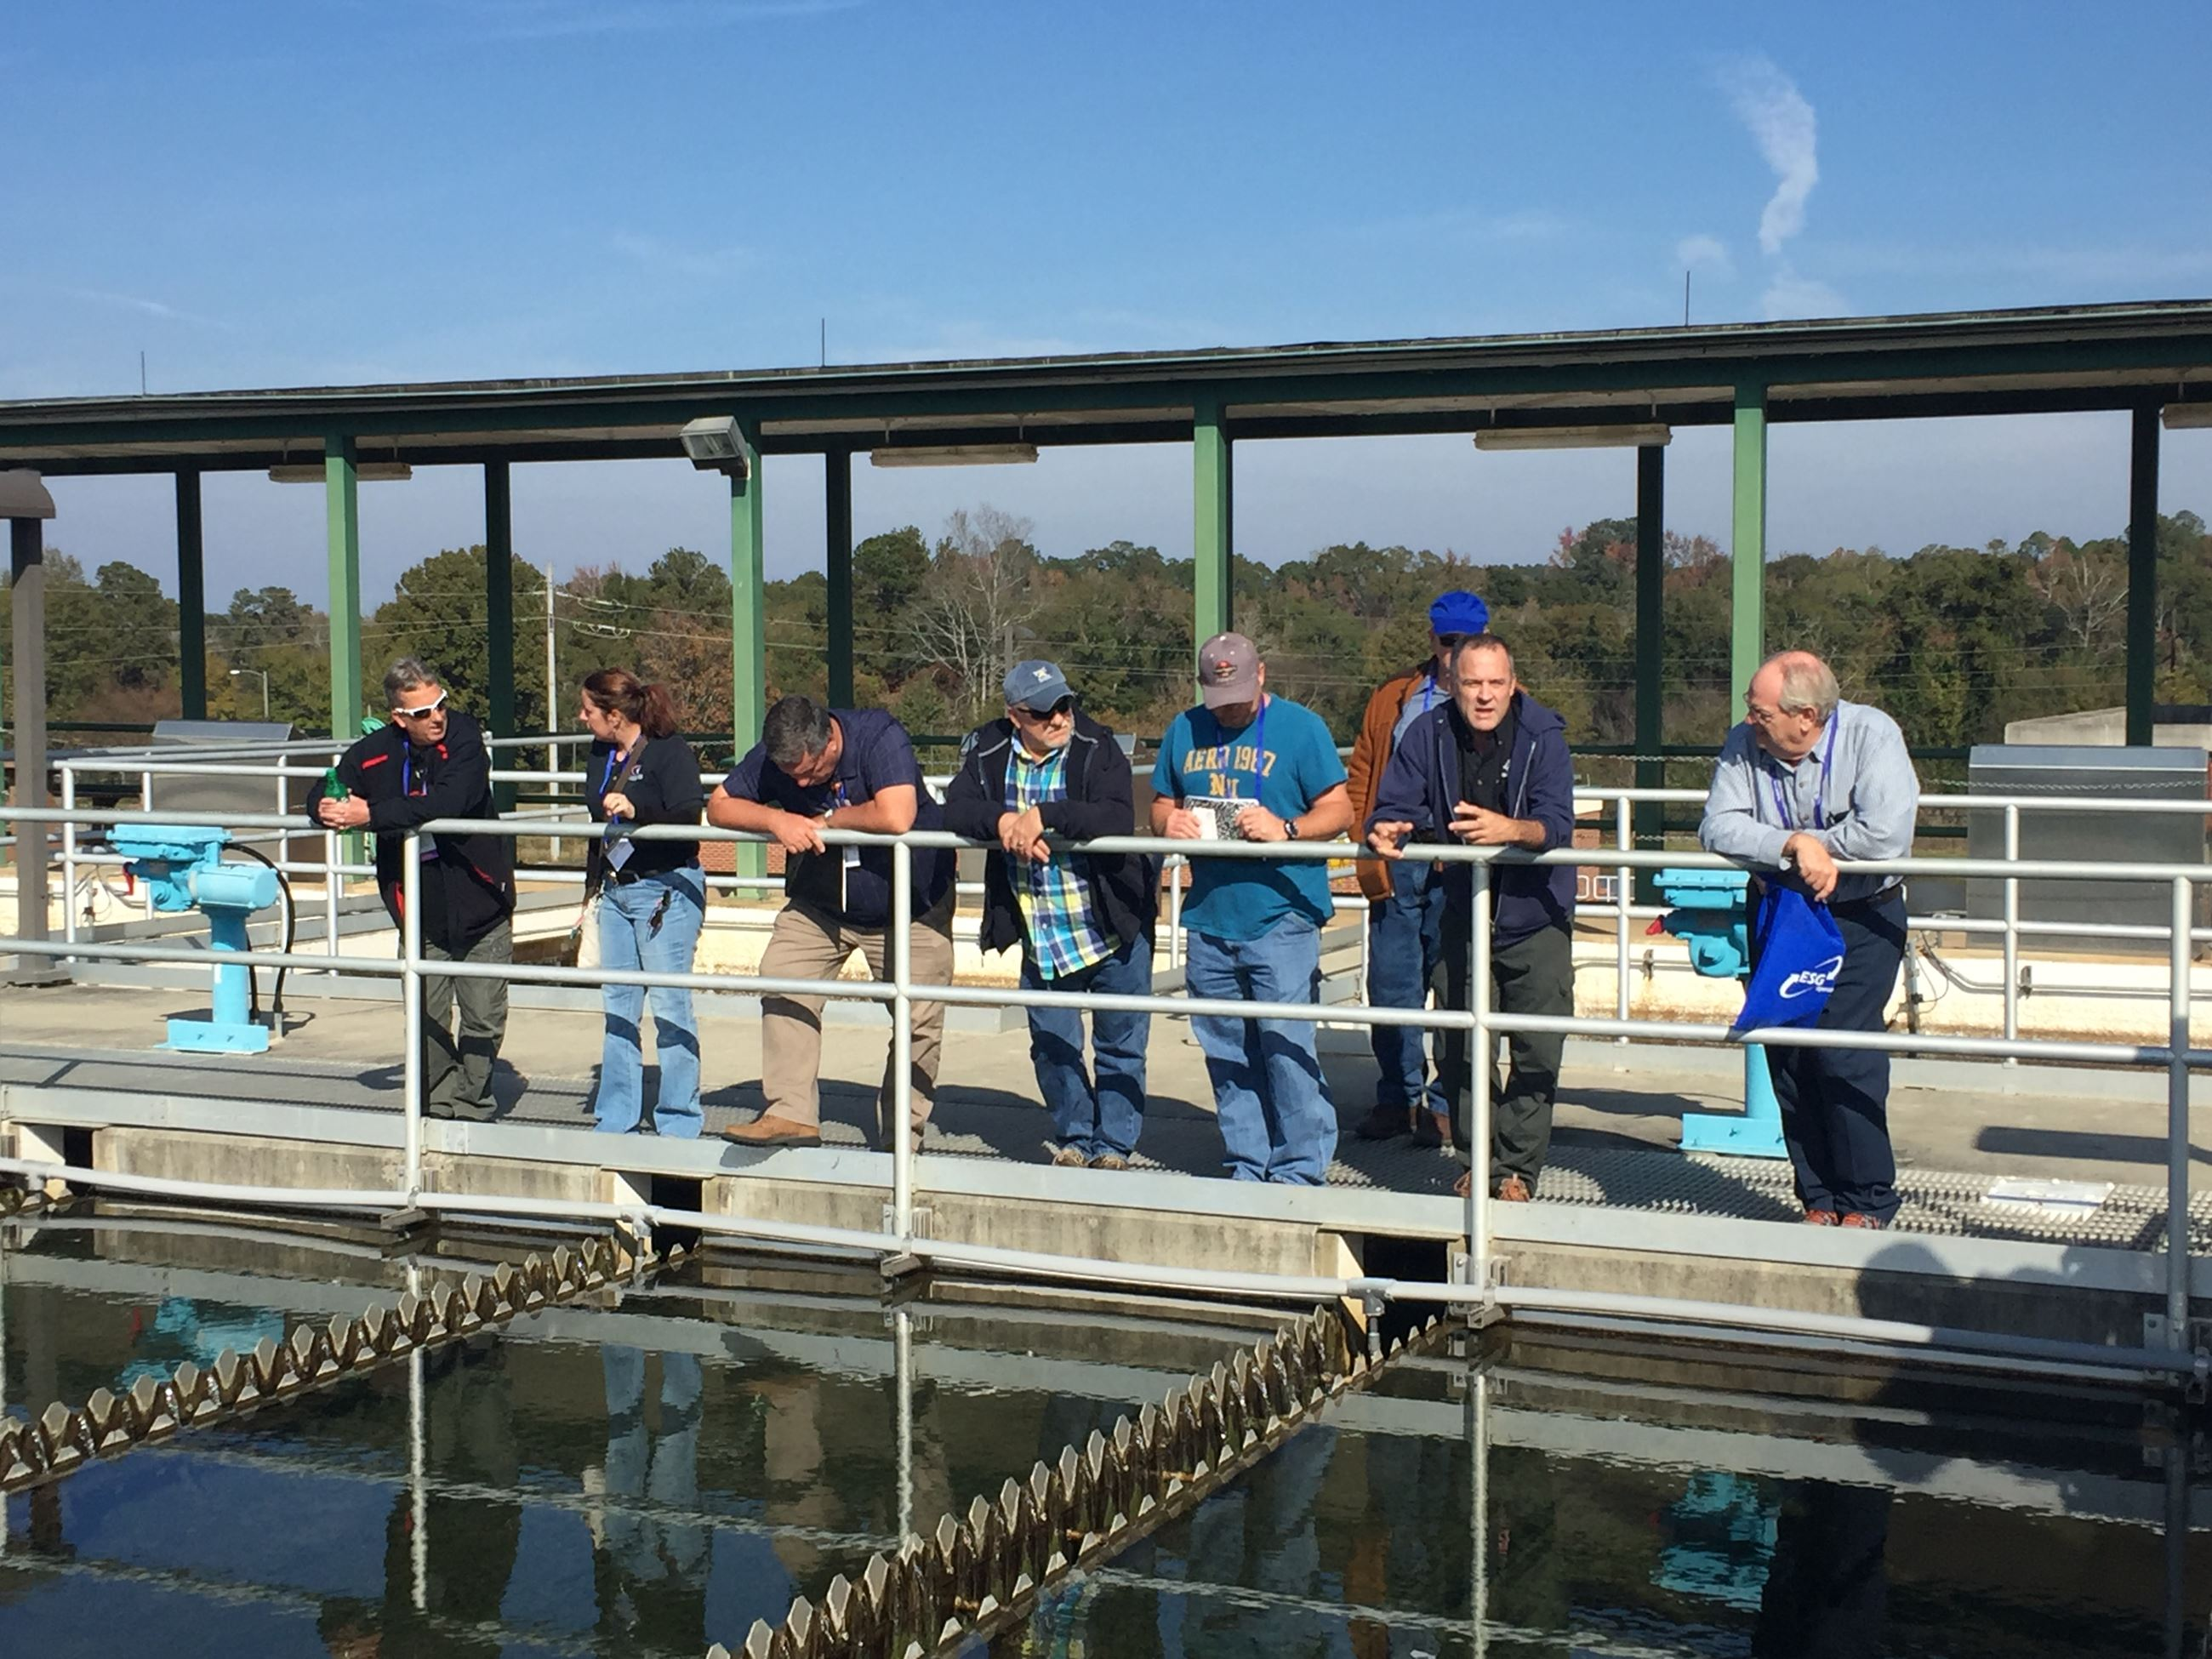 Tour of the Drinking Water Treatment Plant